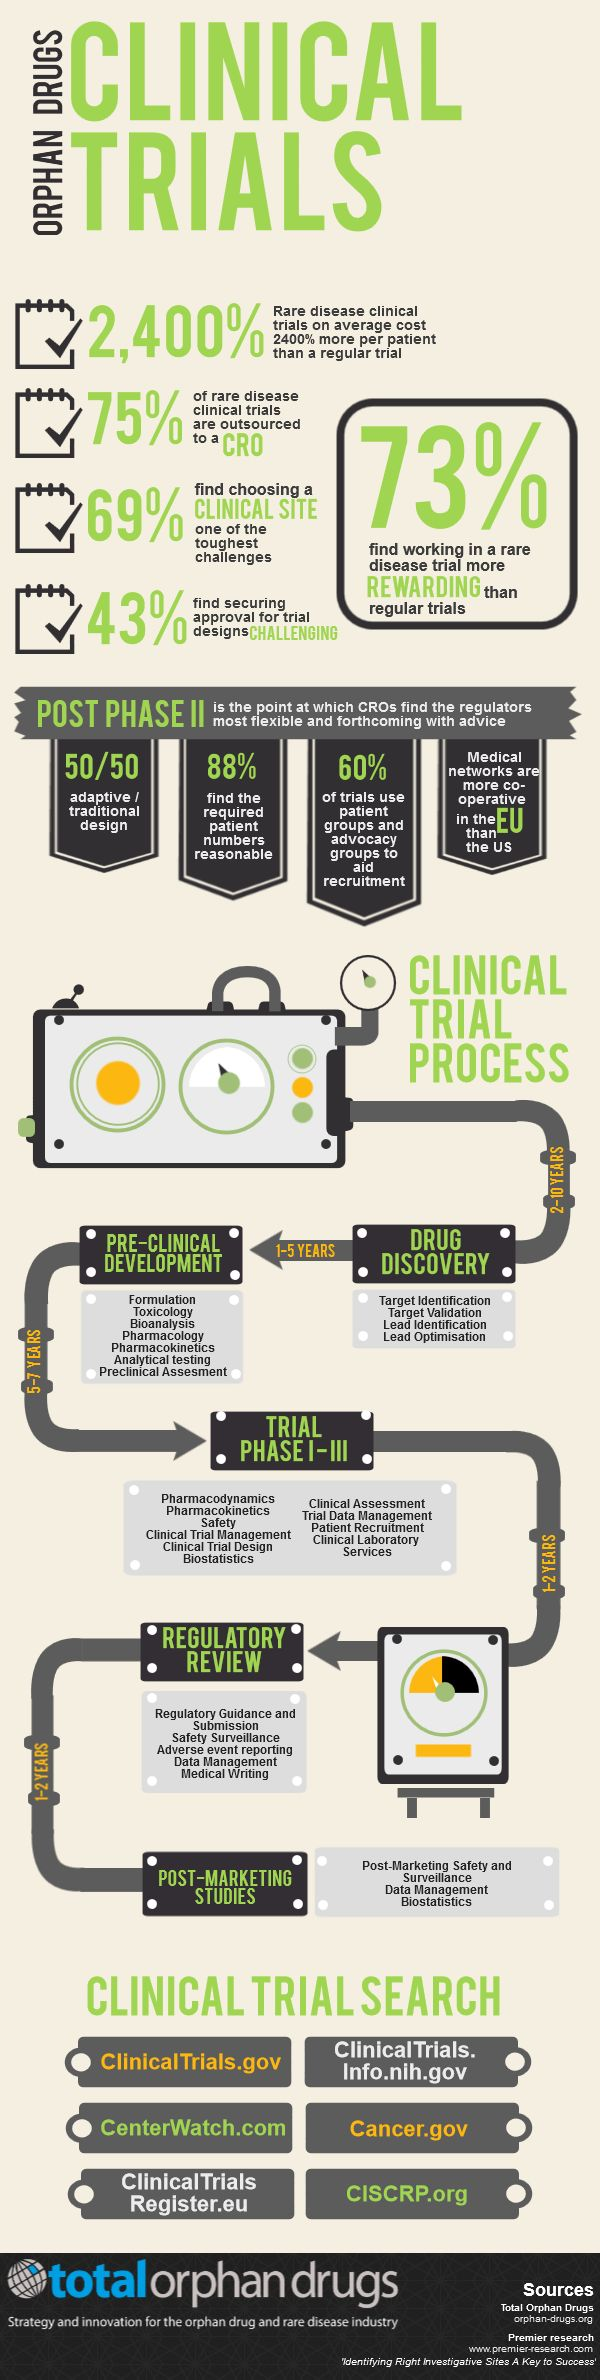 Infographic: Rare disease clinical trial facts and figures (Feb 2014) #RareDisease #pharma